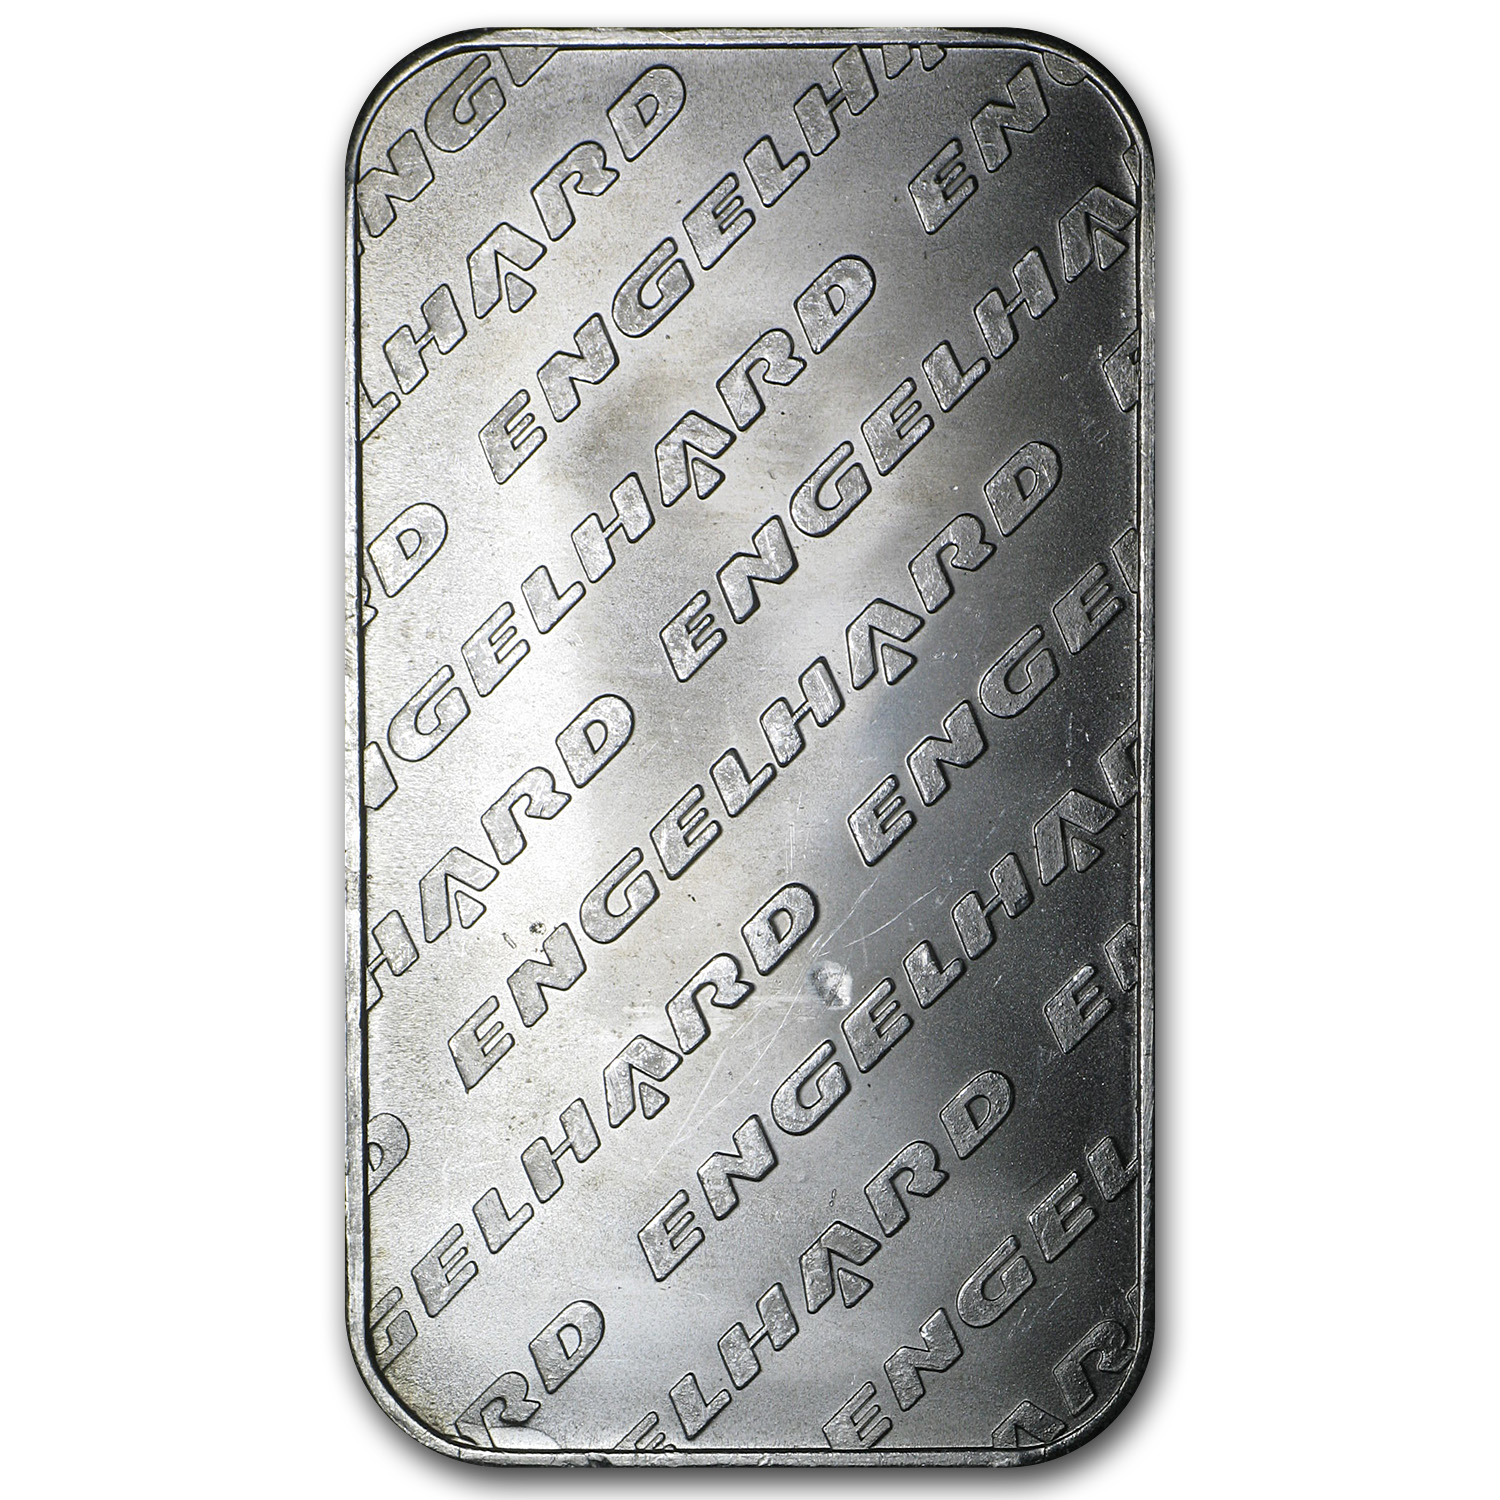 1 oz Silver Bars - Engelhard (Tall/Eagle/Logo)